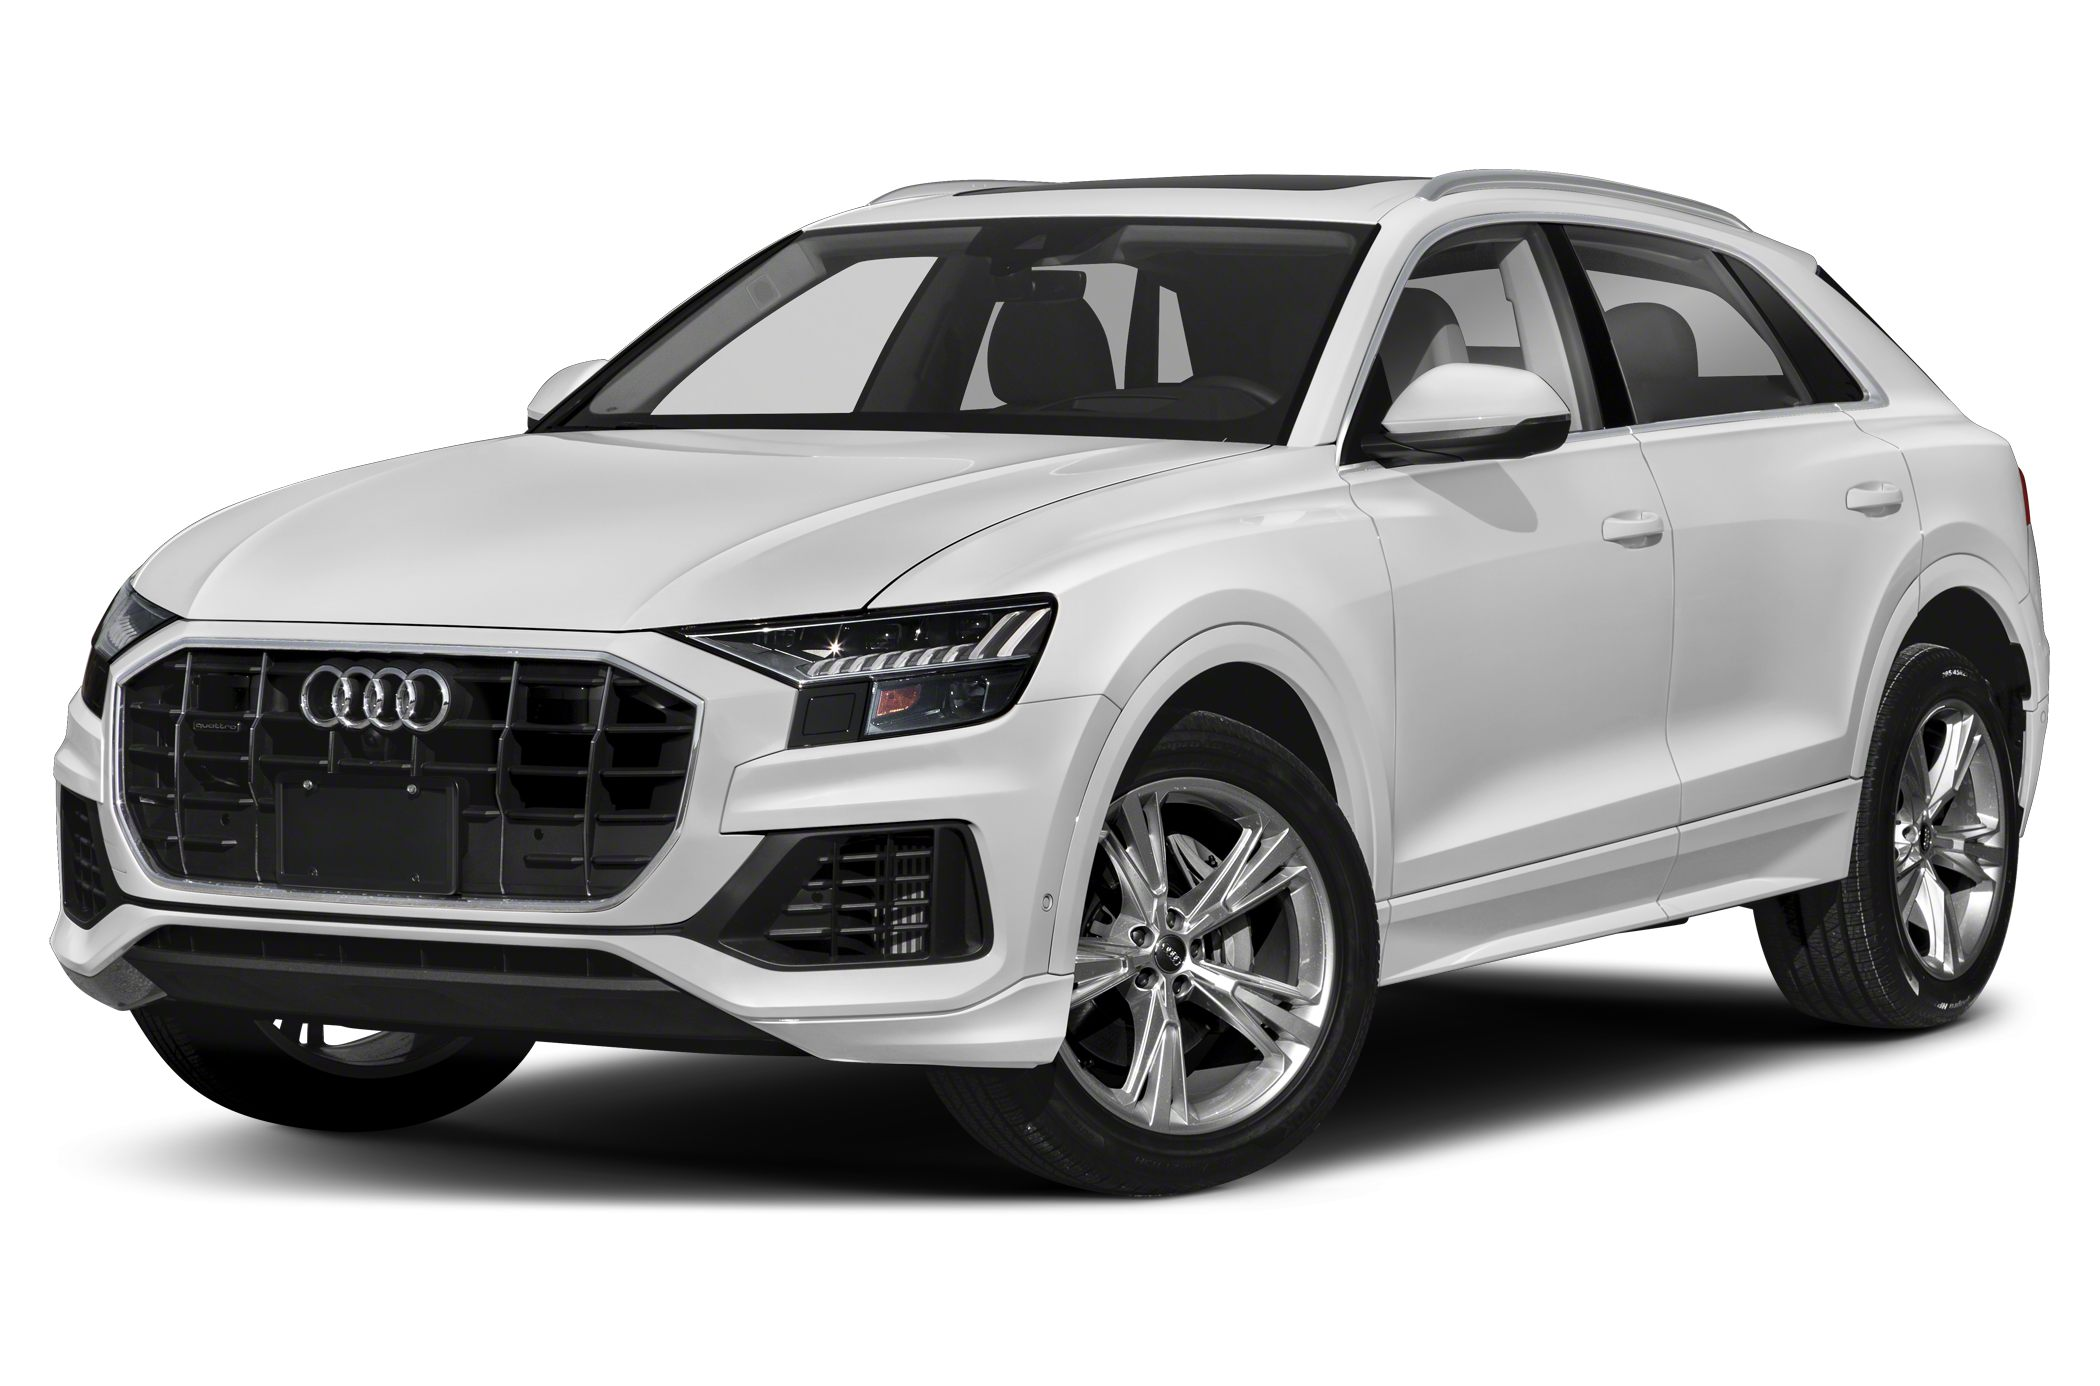 Why the Audi Q8 got the RS treatment but the Q7 didn't